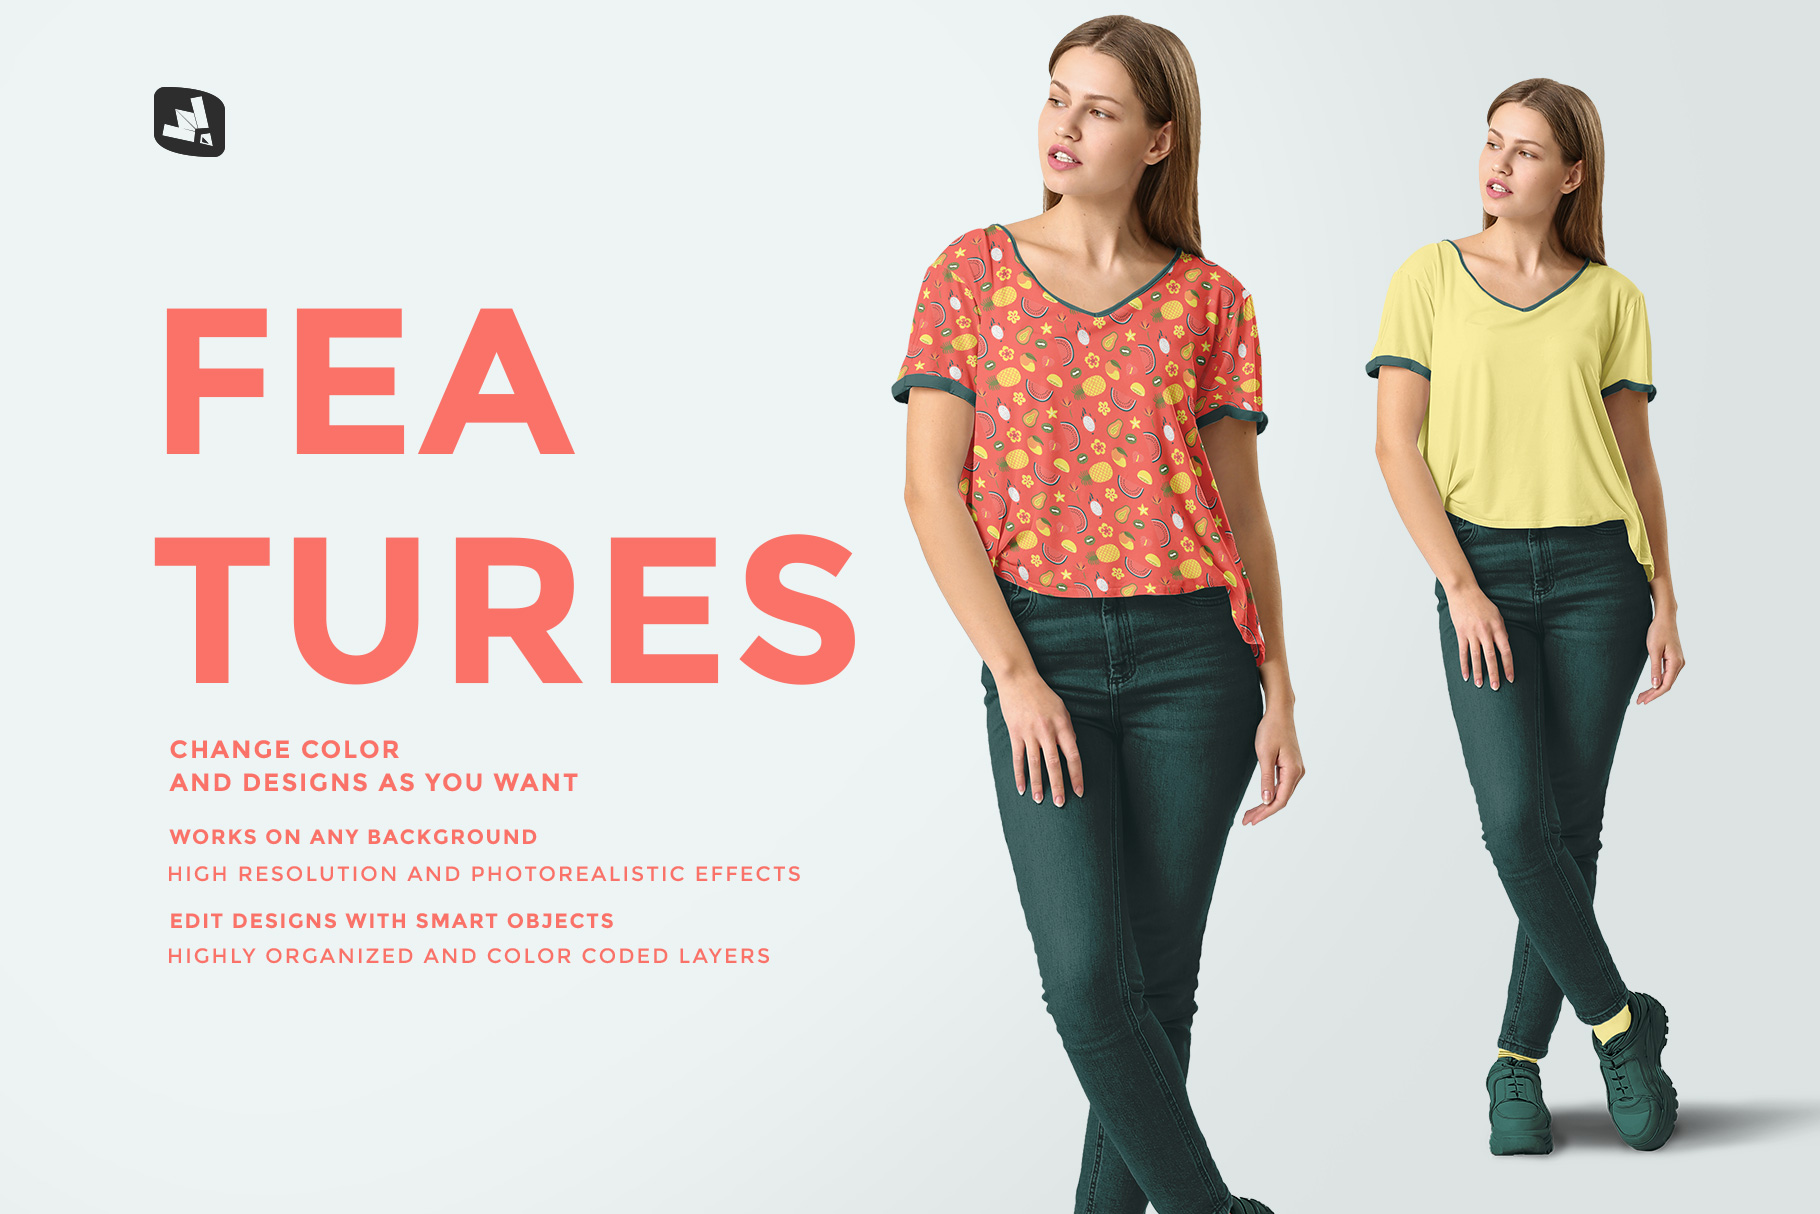 features of the casual outfit with female model mockup